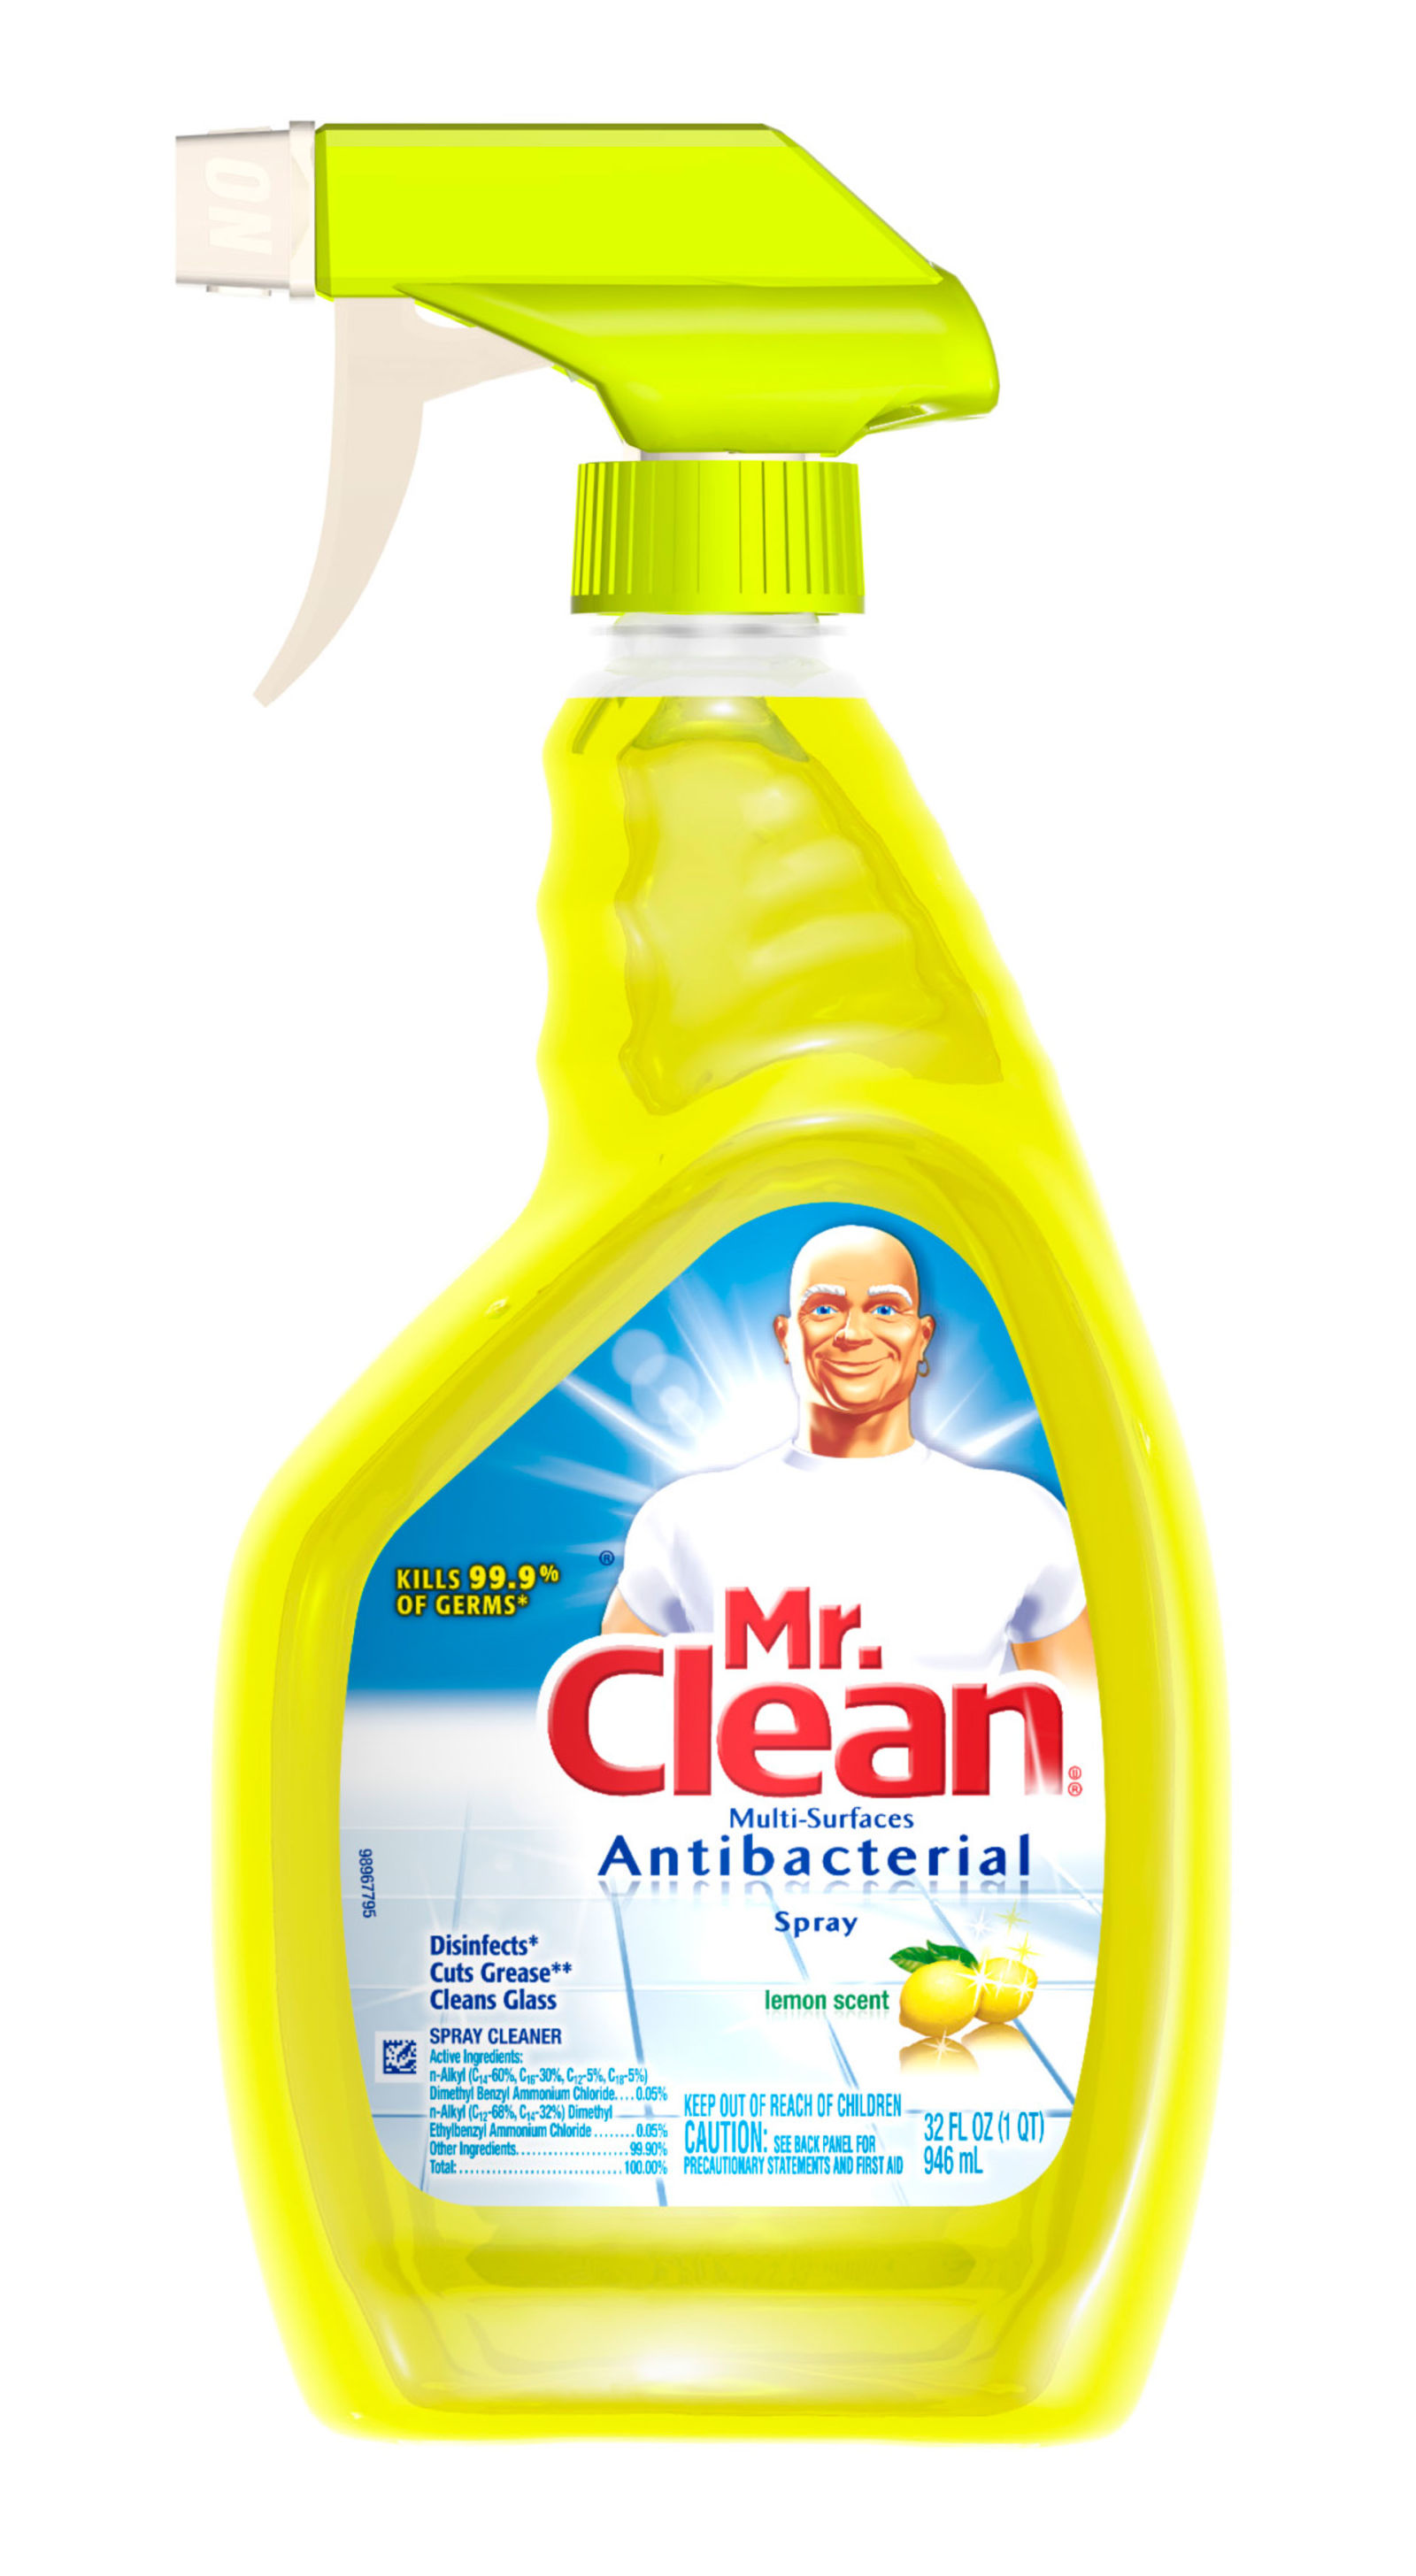 Best MultiPurpose Cleaners AllPurpose Cleaner Reviews - Kitchen cleaner